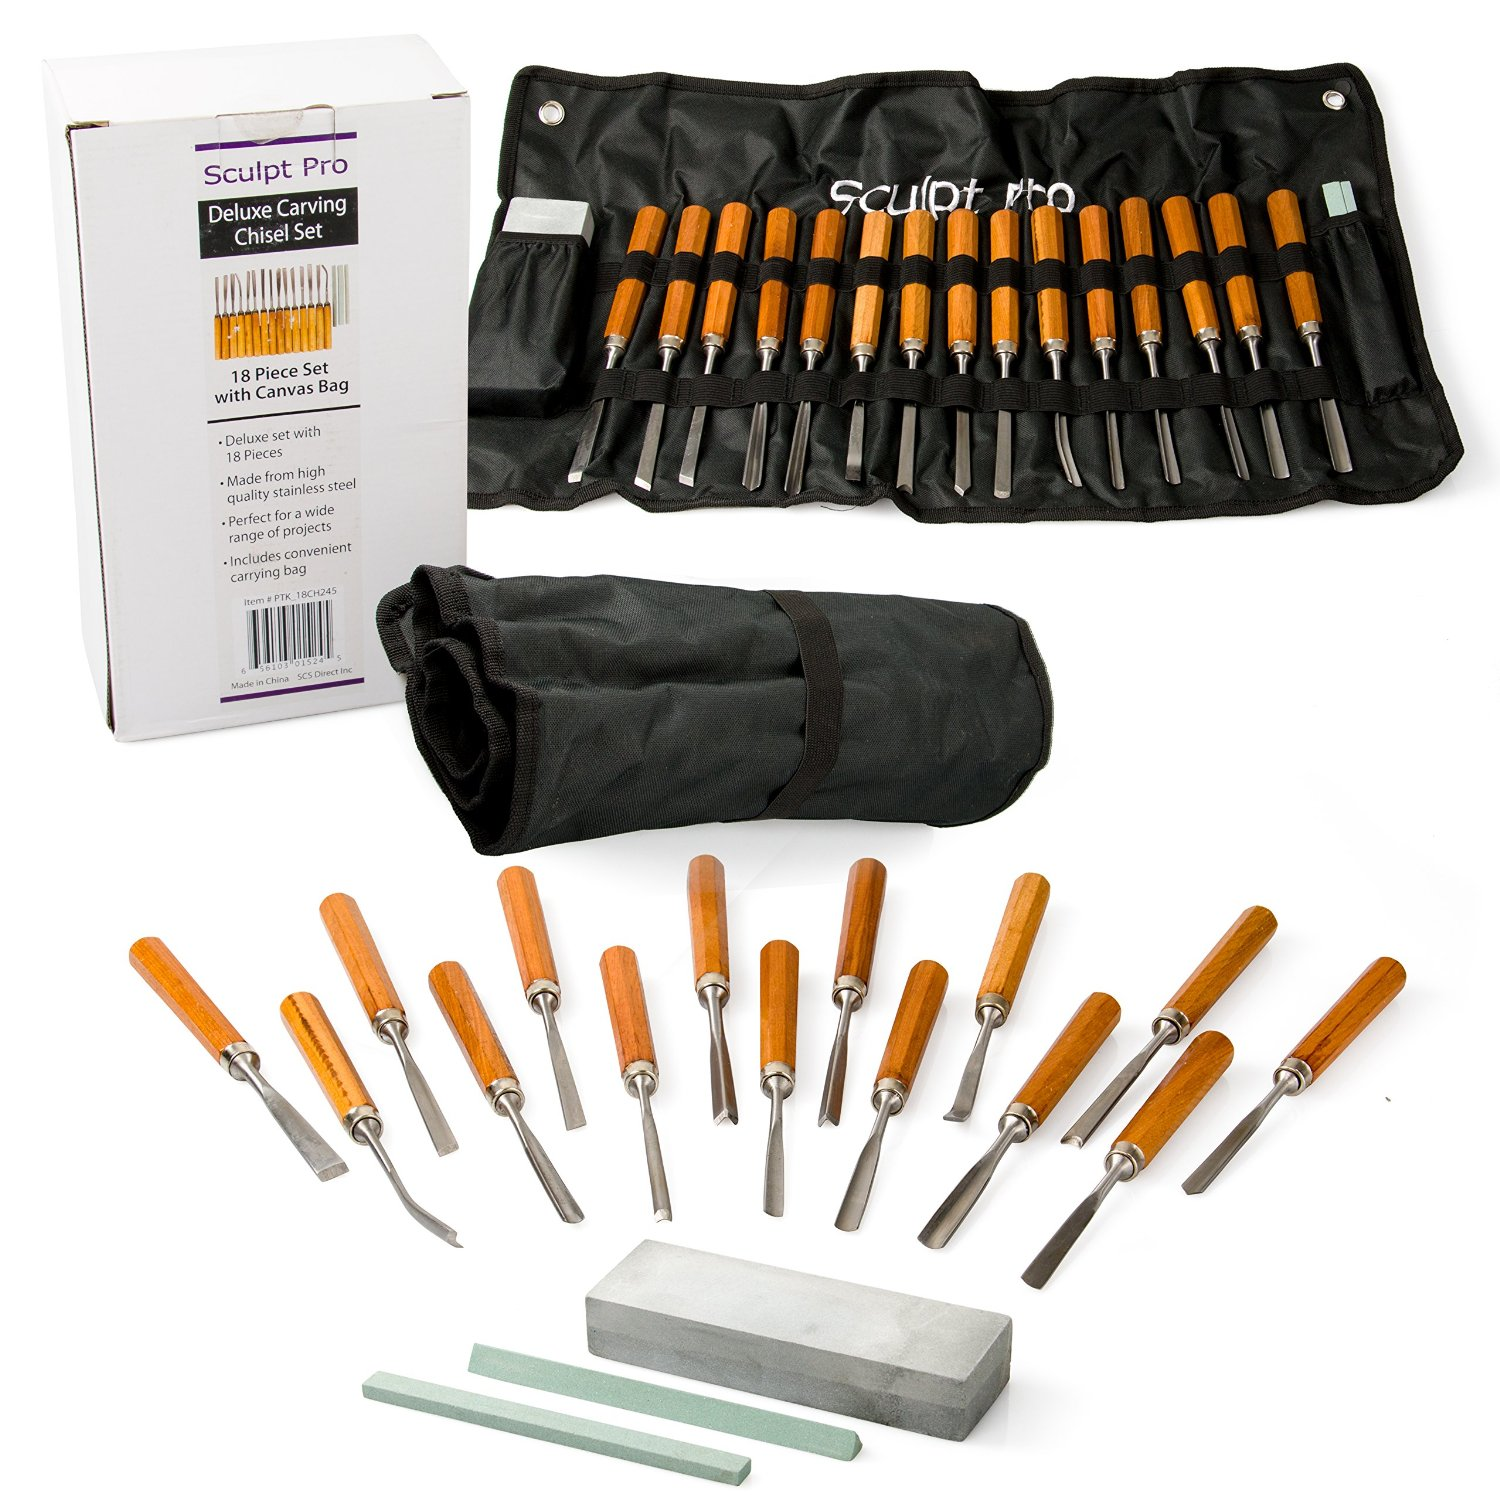 Wood Carving Chisel Set- Professional Wood Carving Tools, Deluxe 18 pieces with Carrying Case